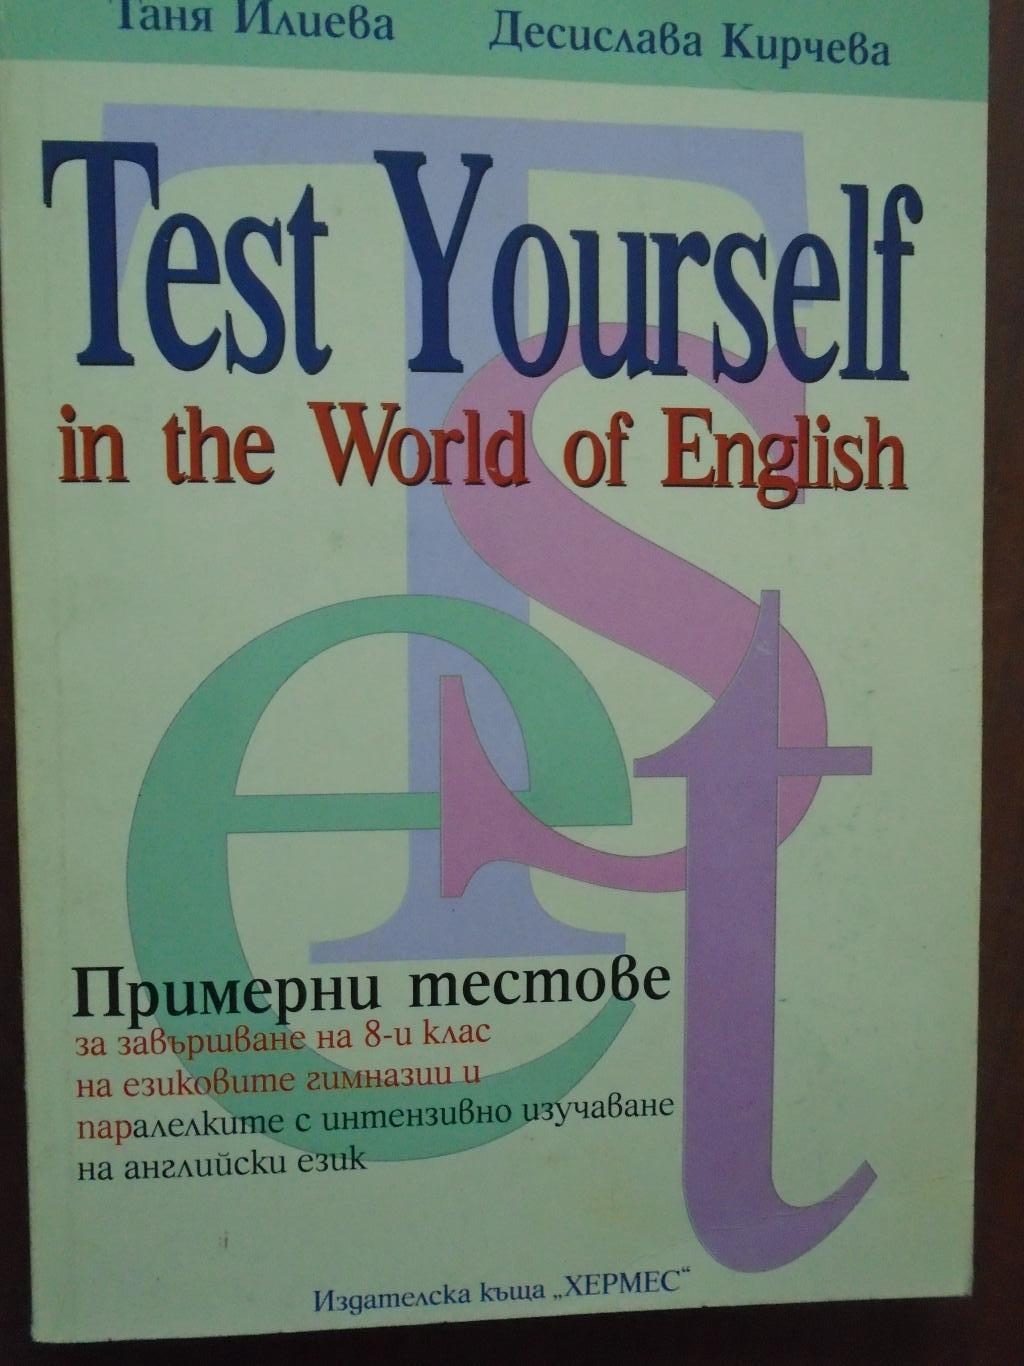 Test Yourself in the World of English, Таня Илиева, Десислава Кирчева